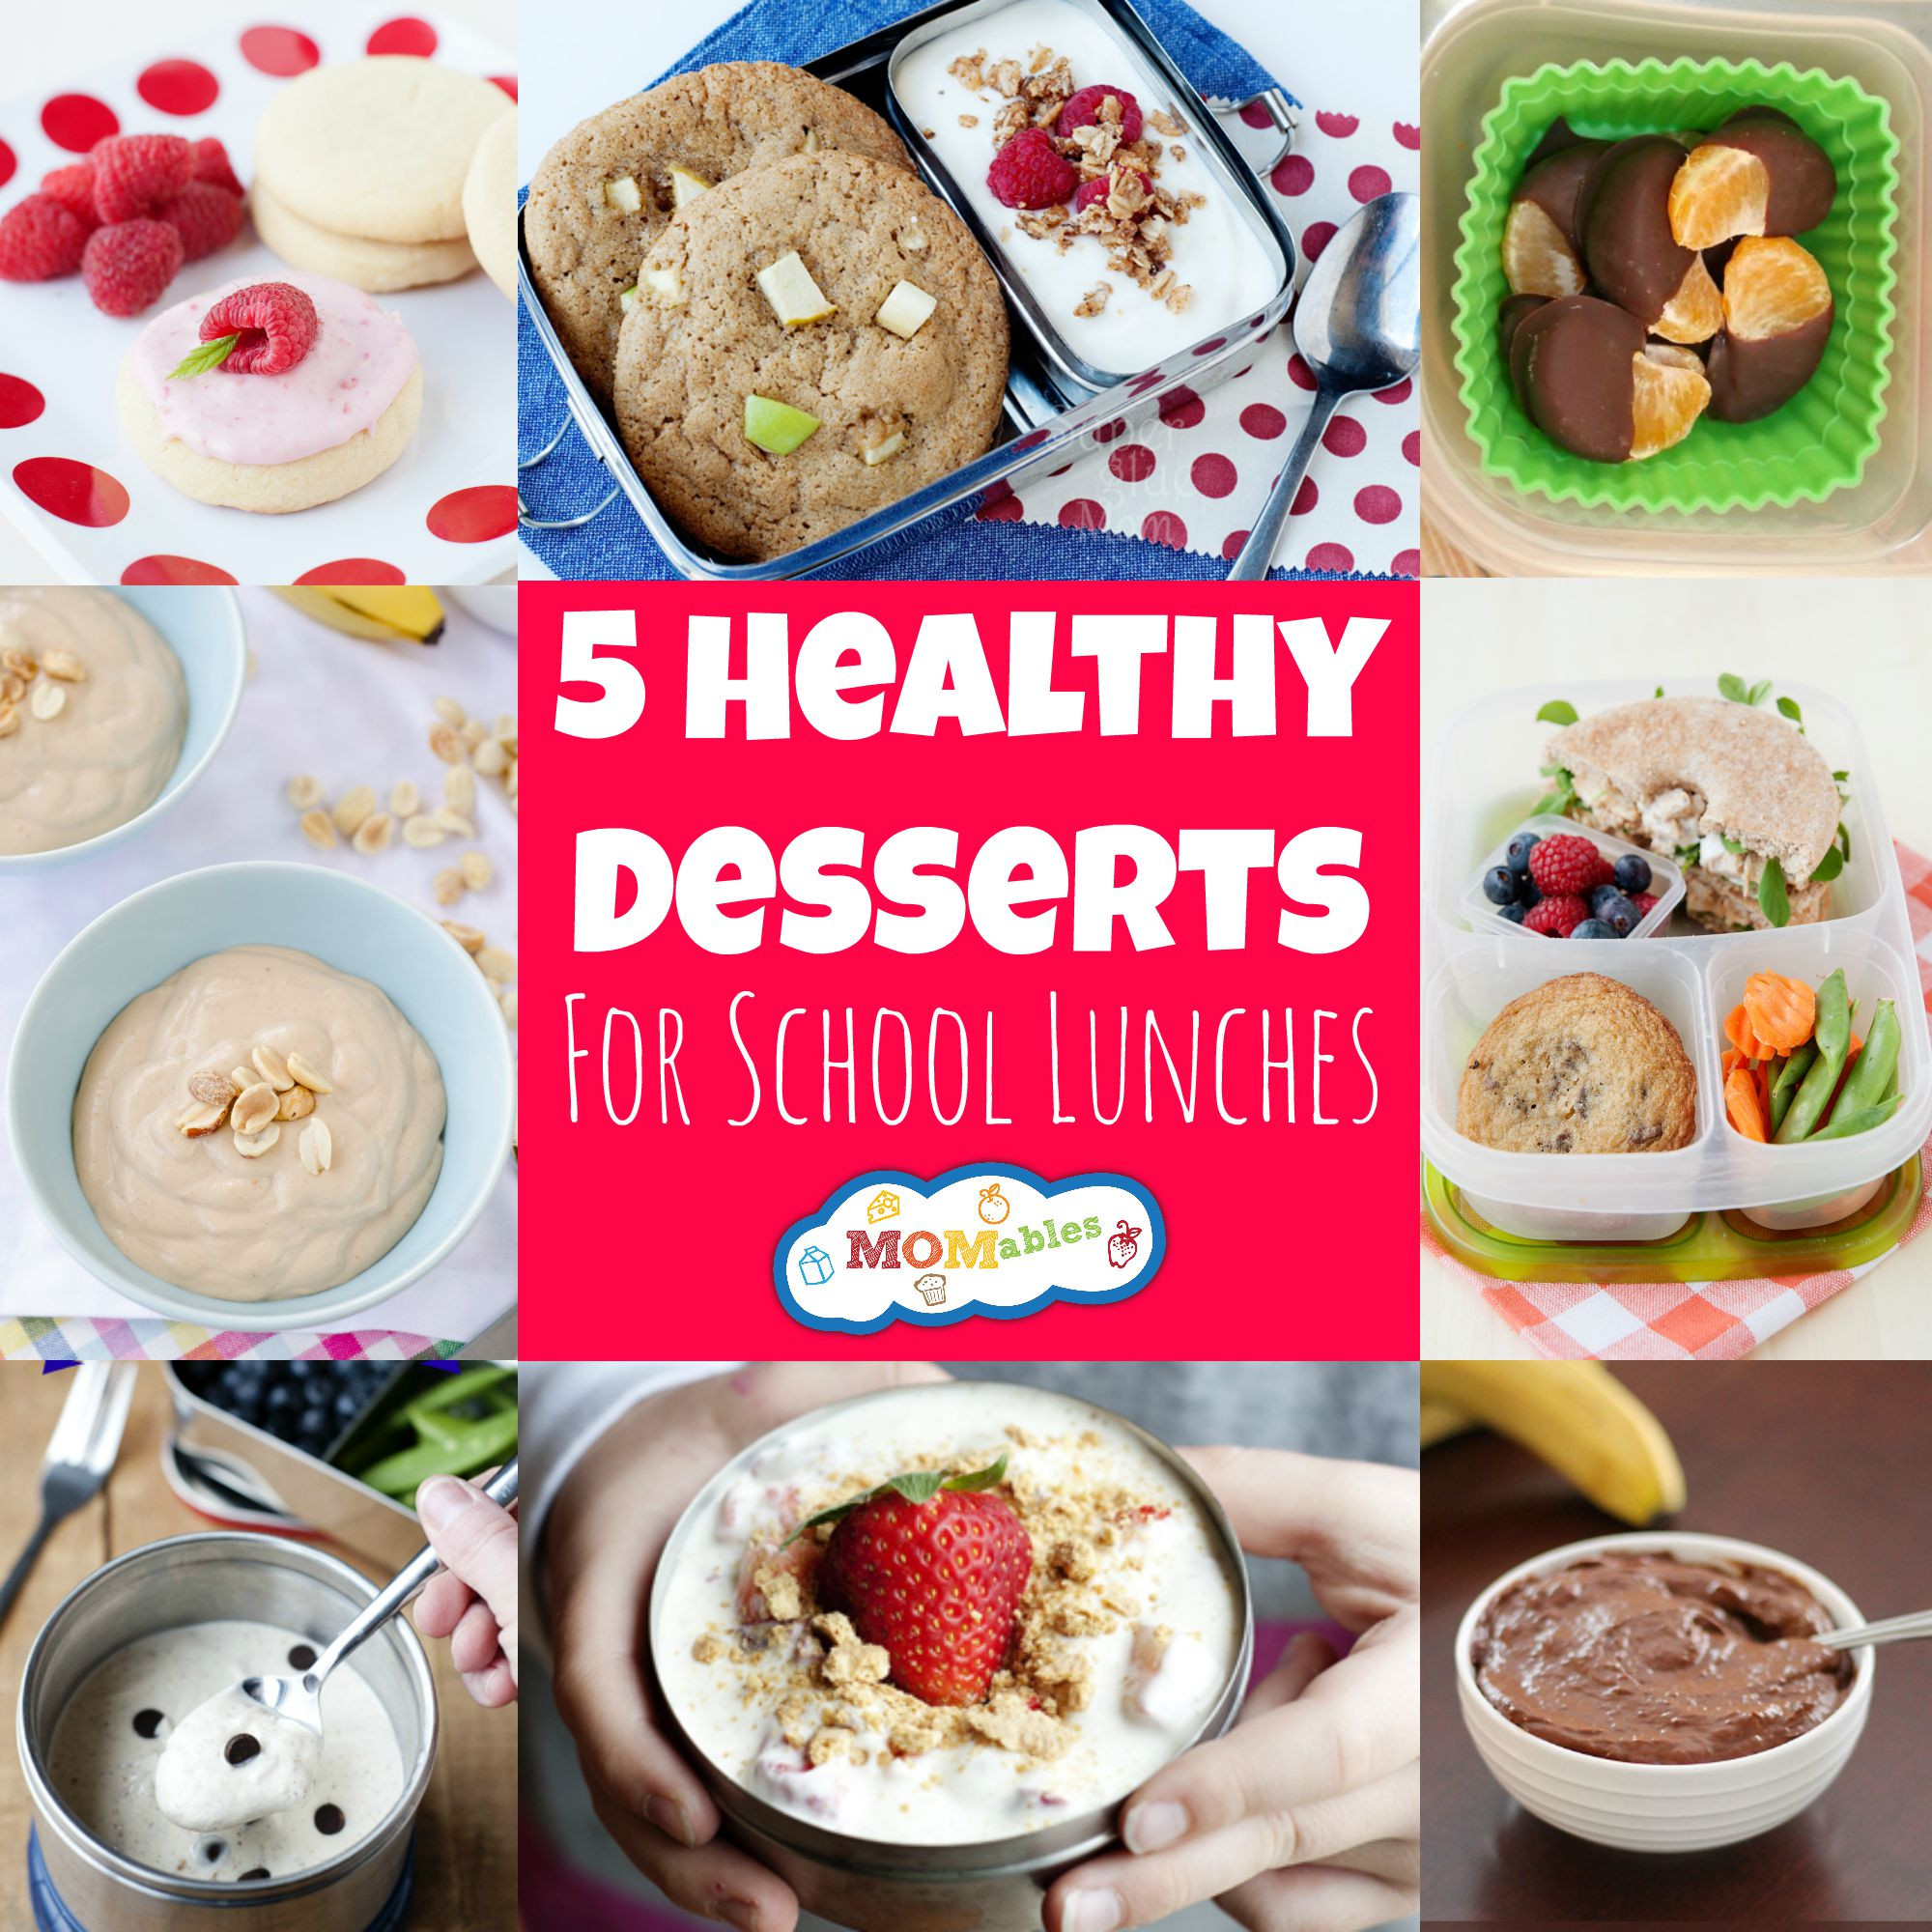 Easy Desserts For Kids  5 Healthy Desserts for School Lunches MOMables